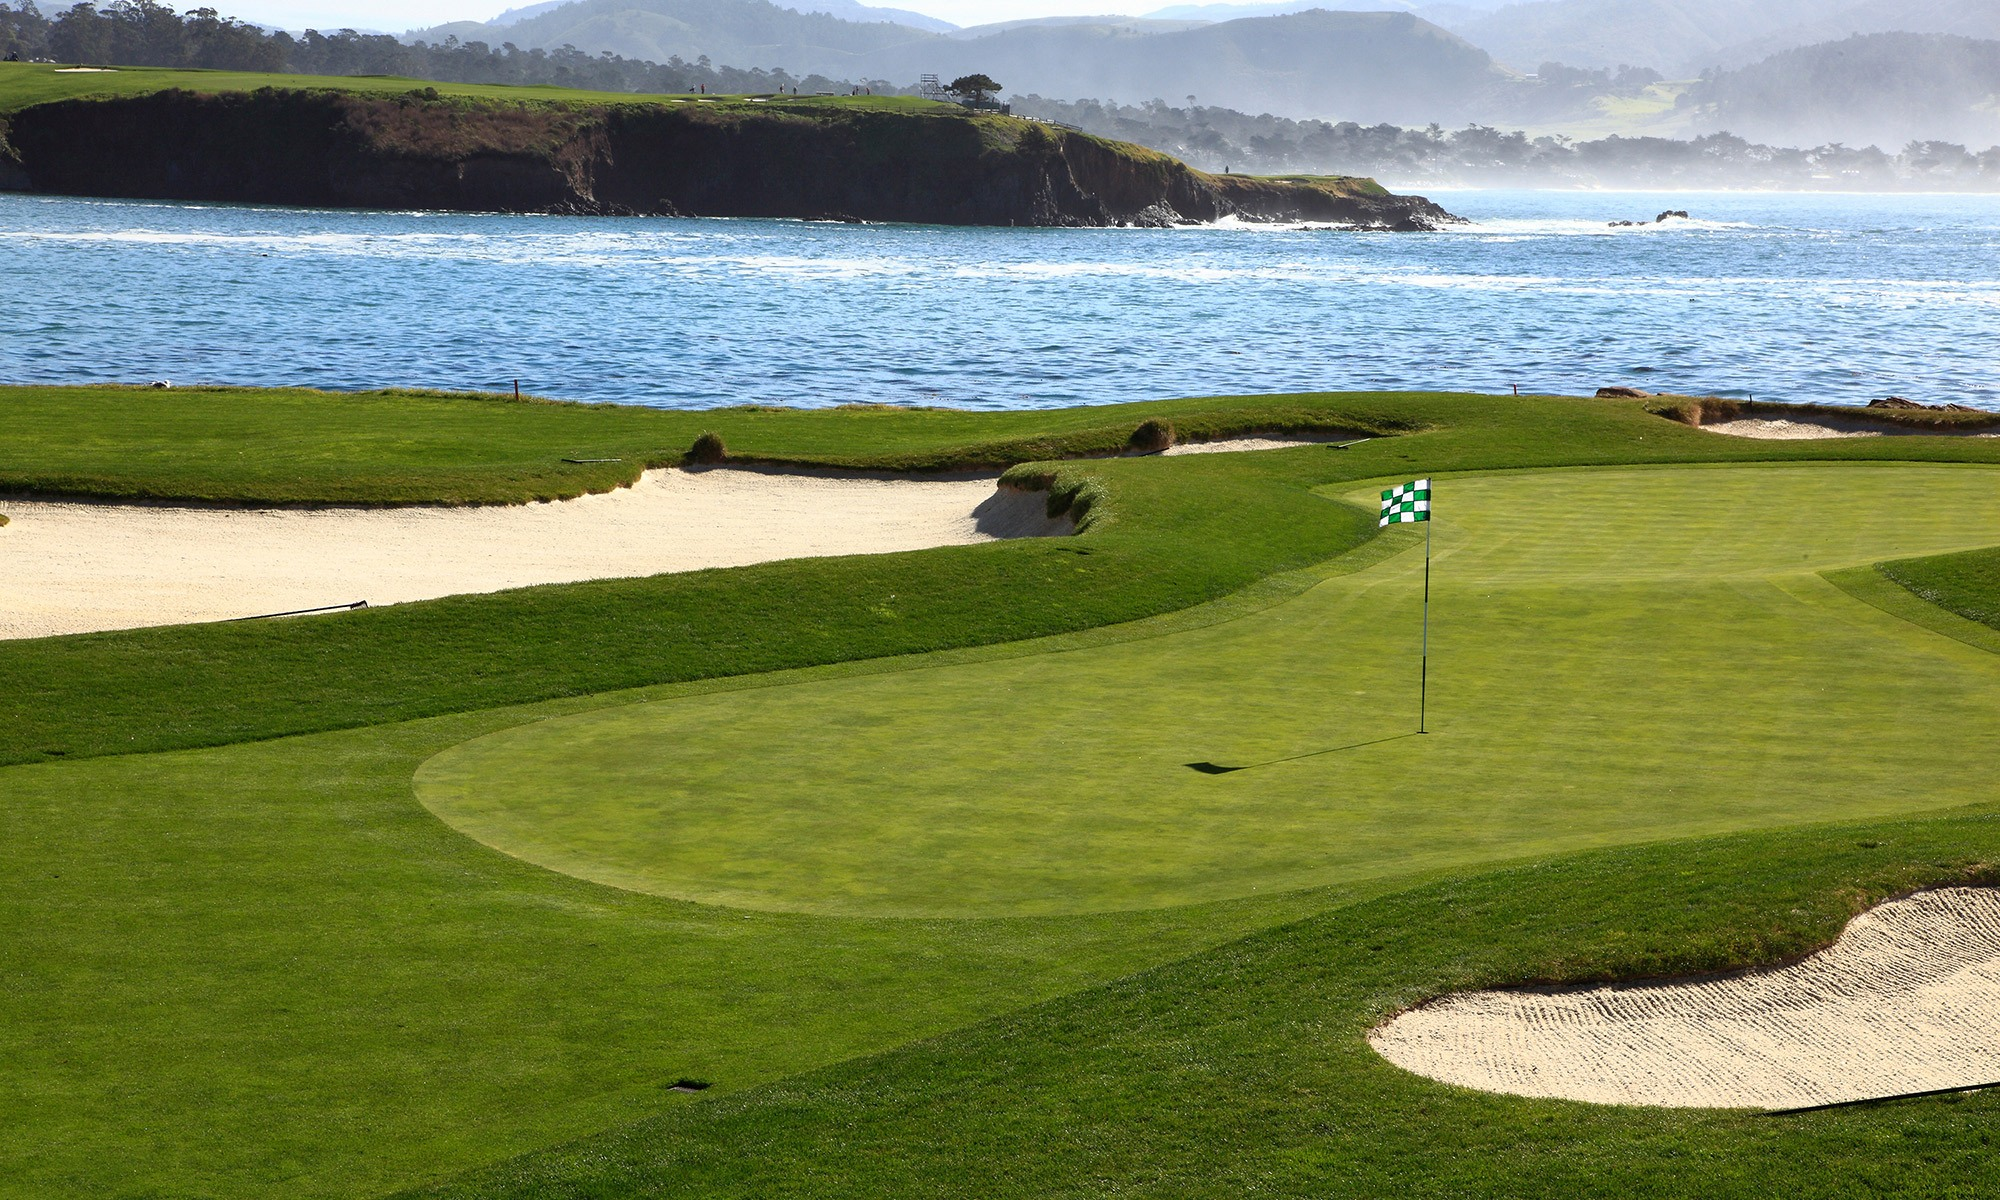 Picture of Pebble Beach Golf Course